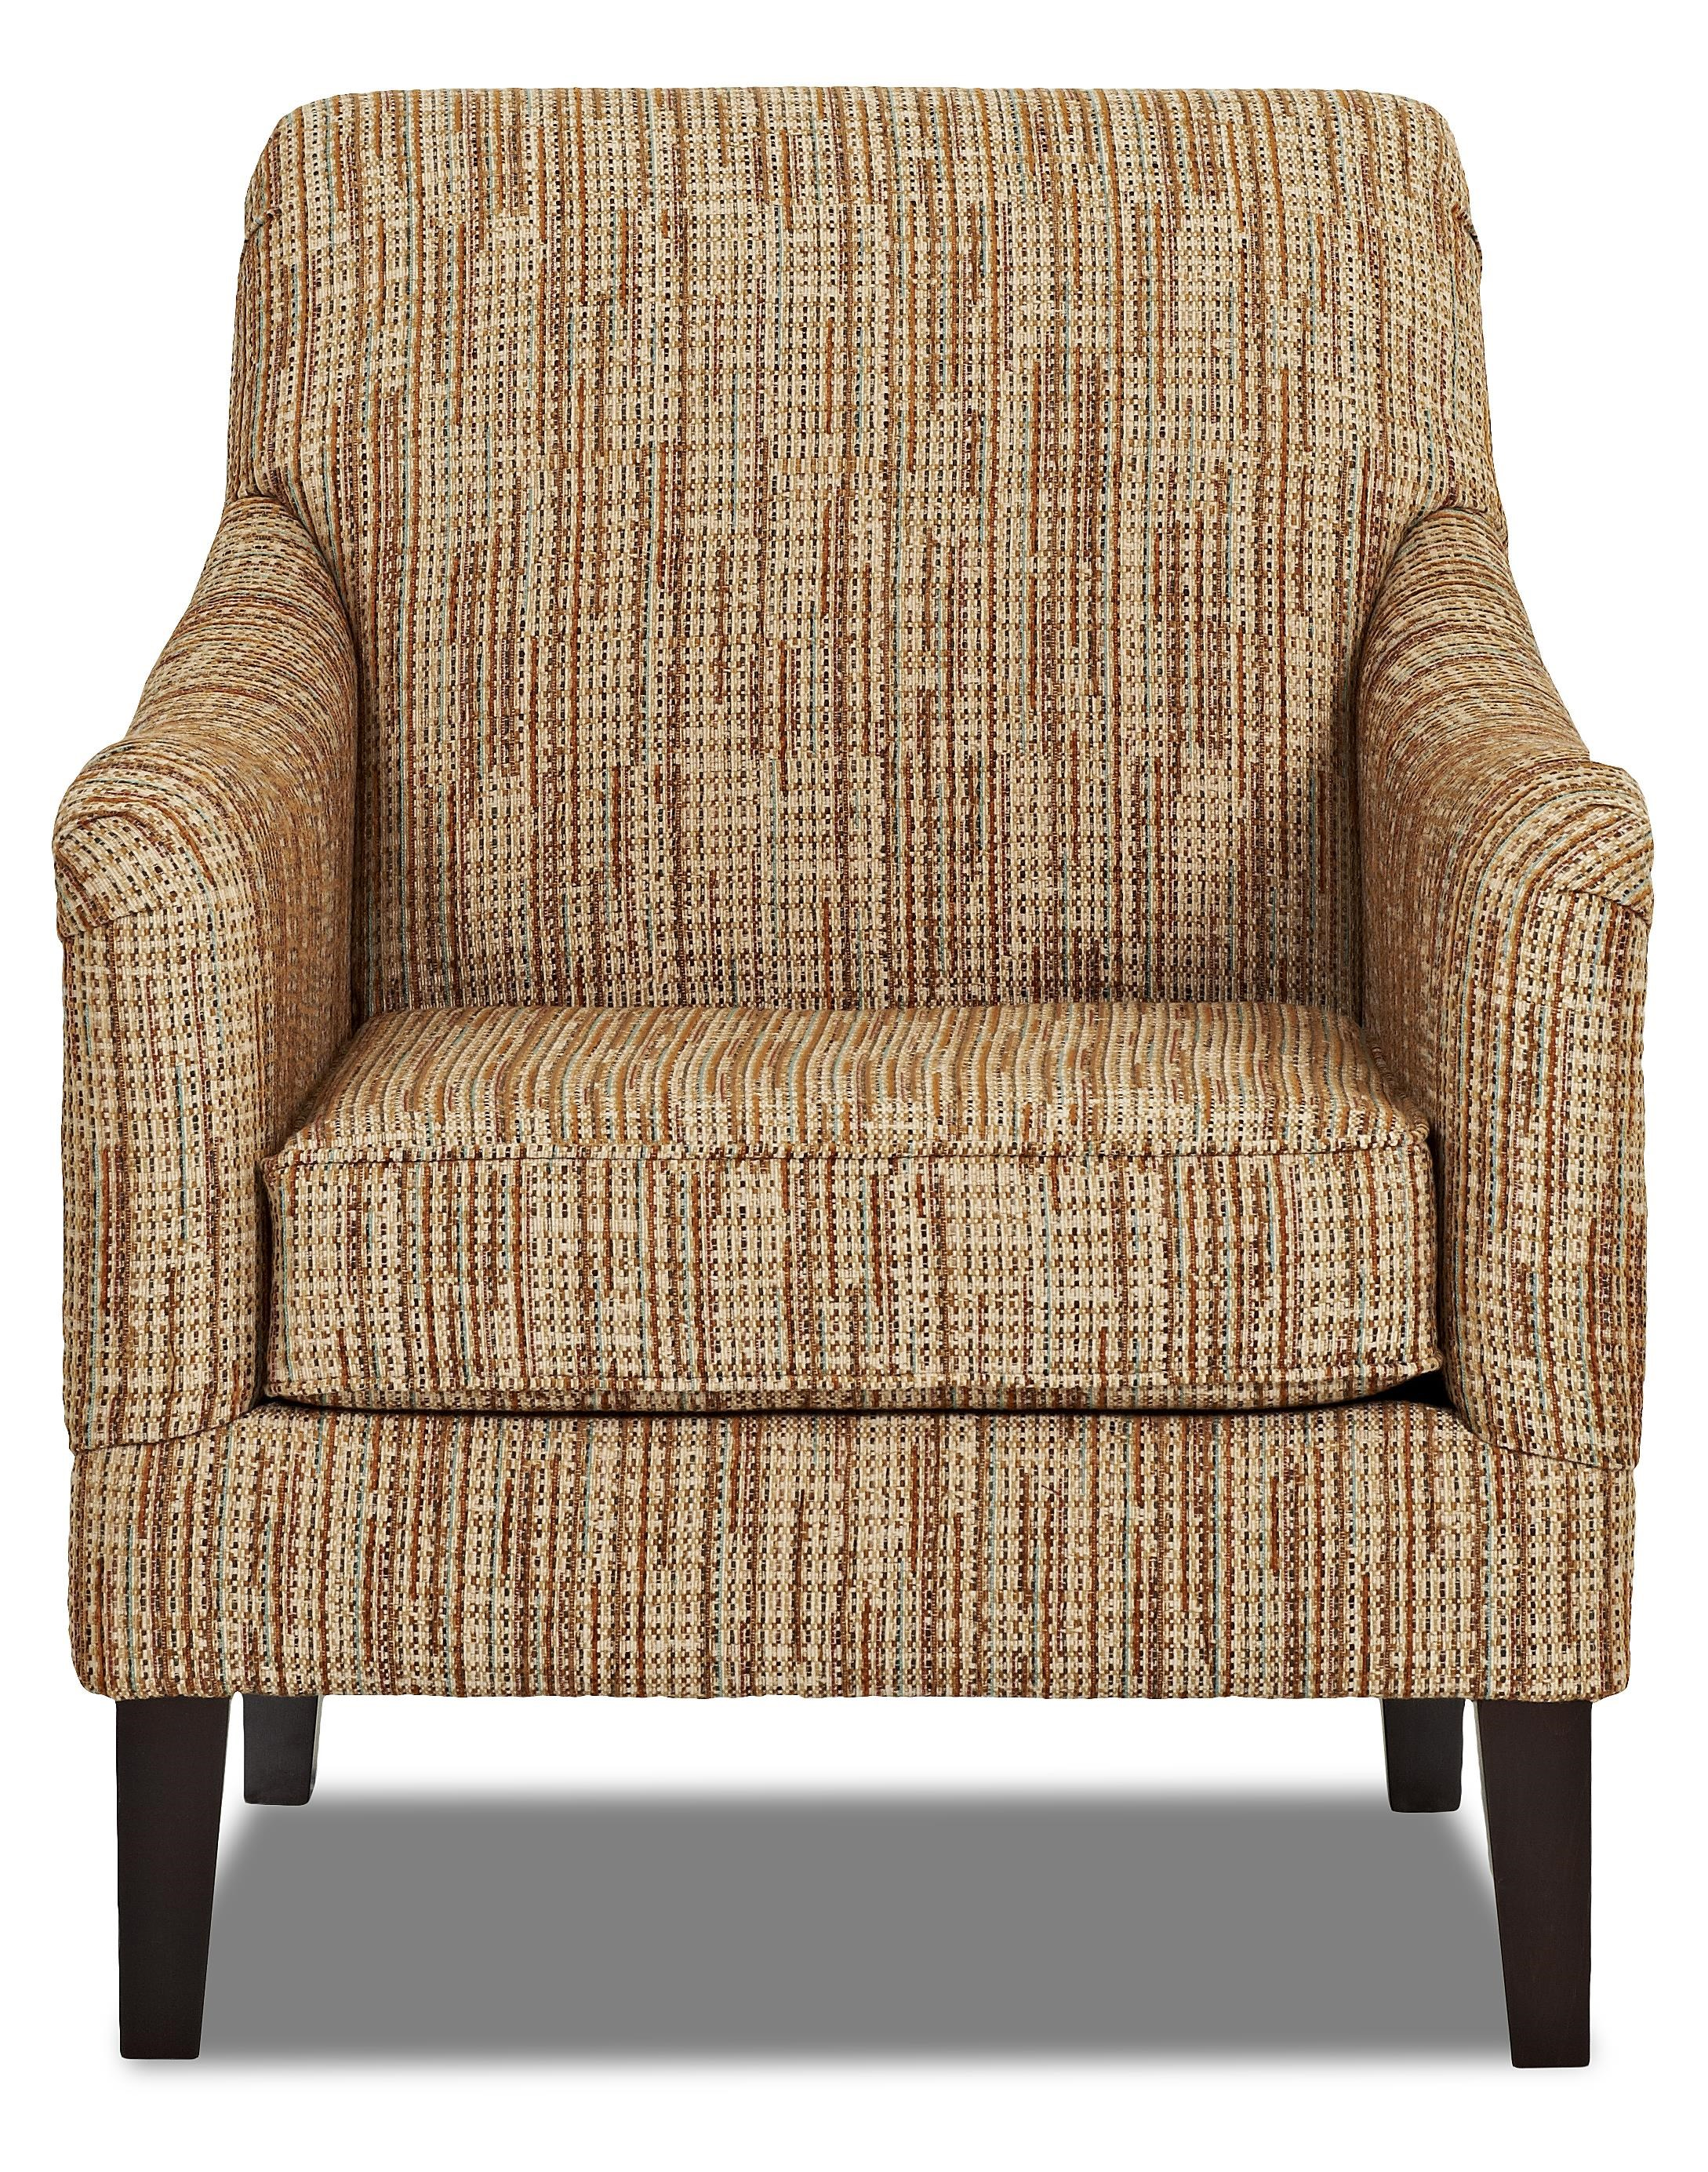 Klaussner RetreatOccasional Chair; Klaussner RetreatOccasional Chair